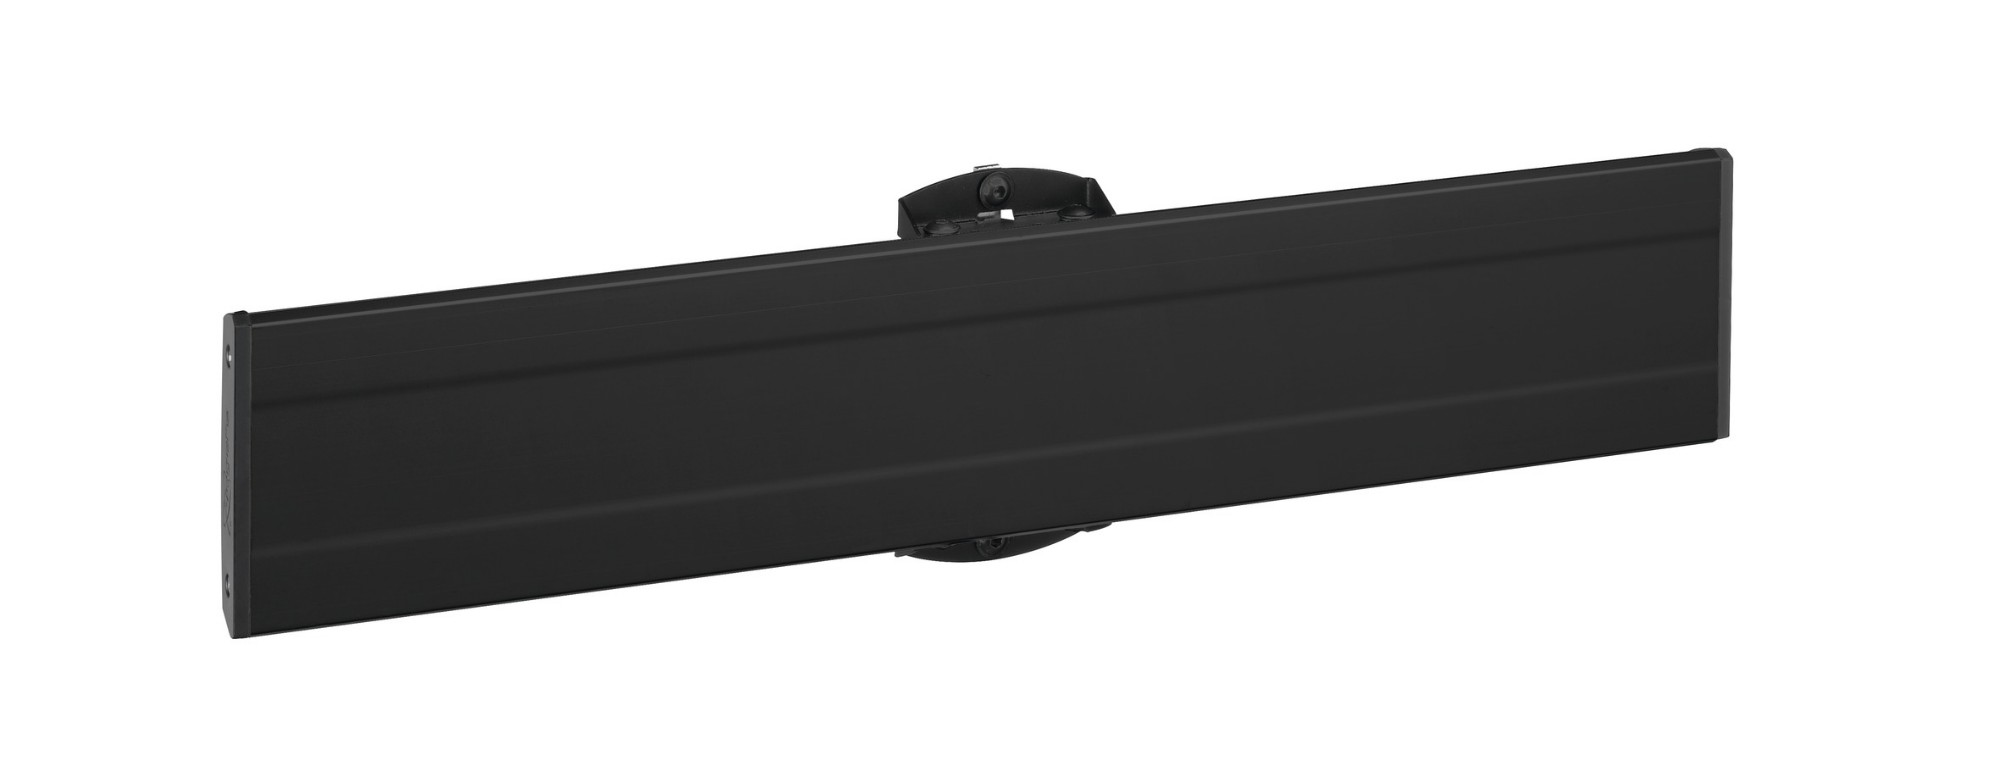 Interface Bar Pfb 3407 Black